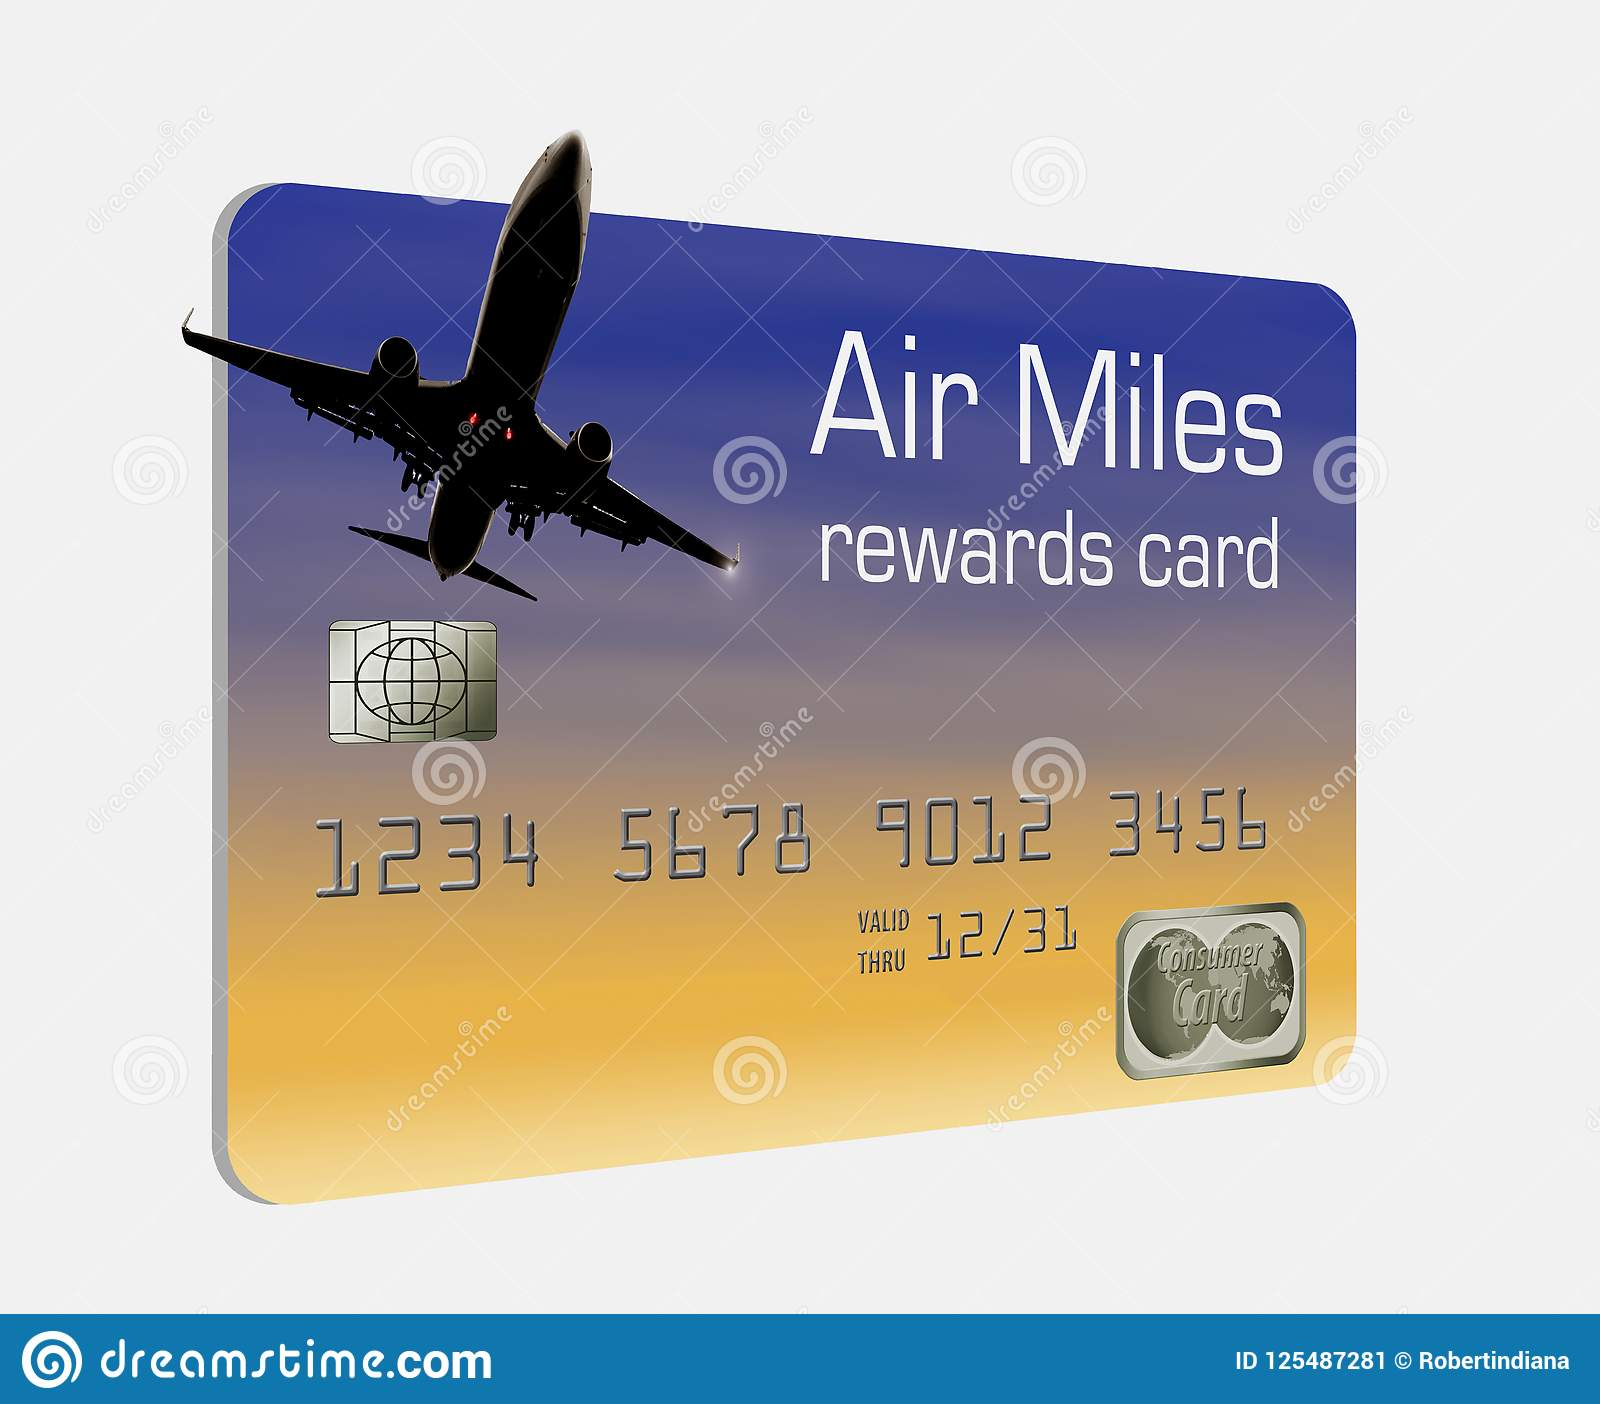 Here is a generic air miles rewards credit card.